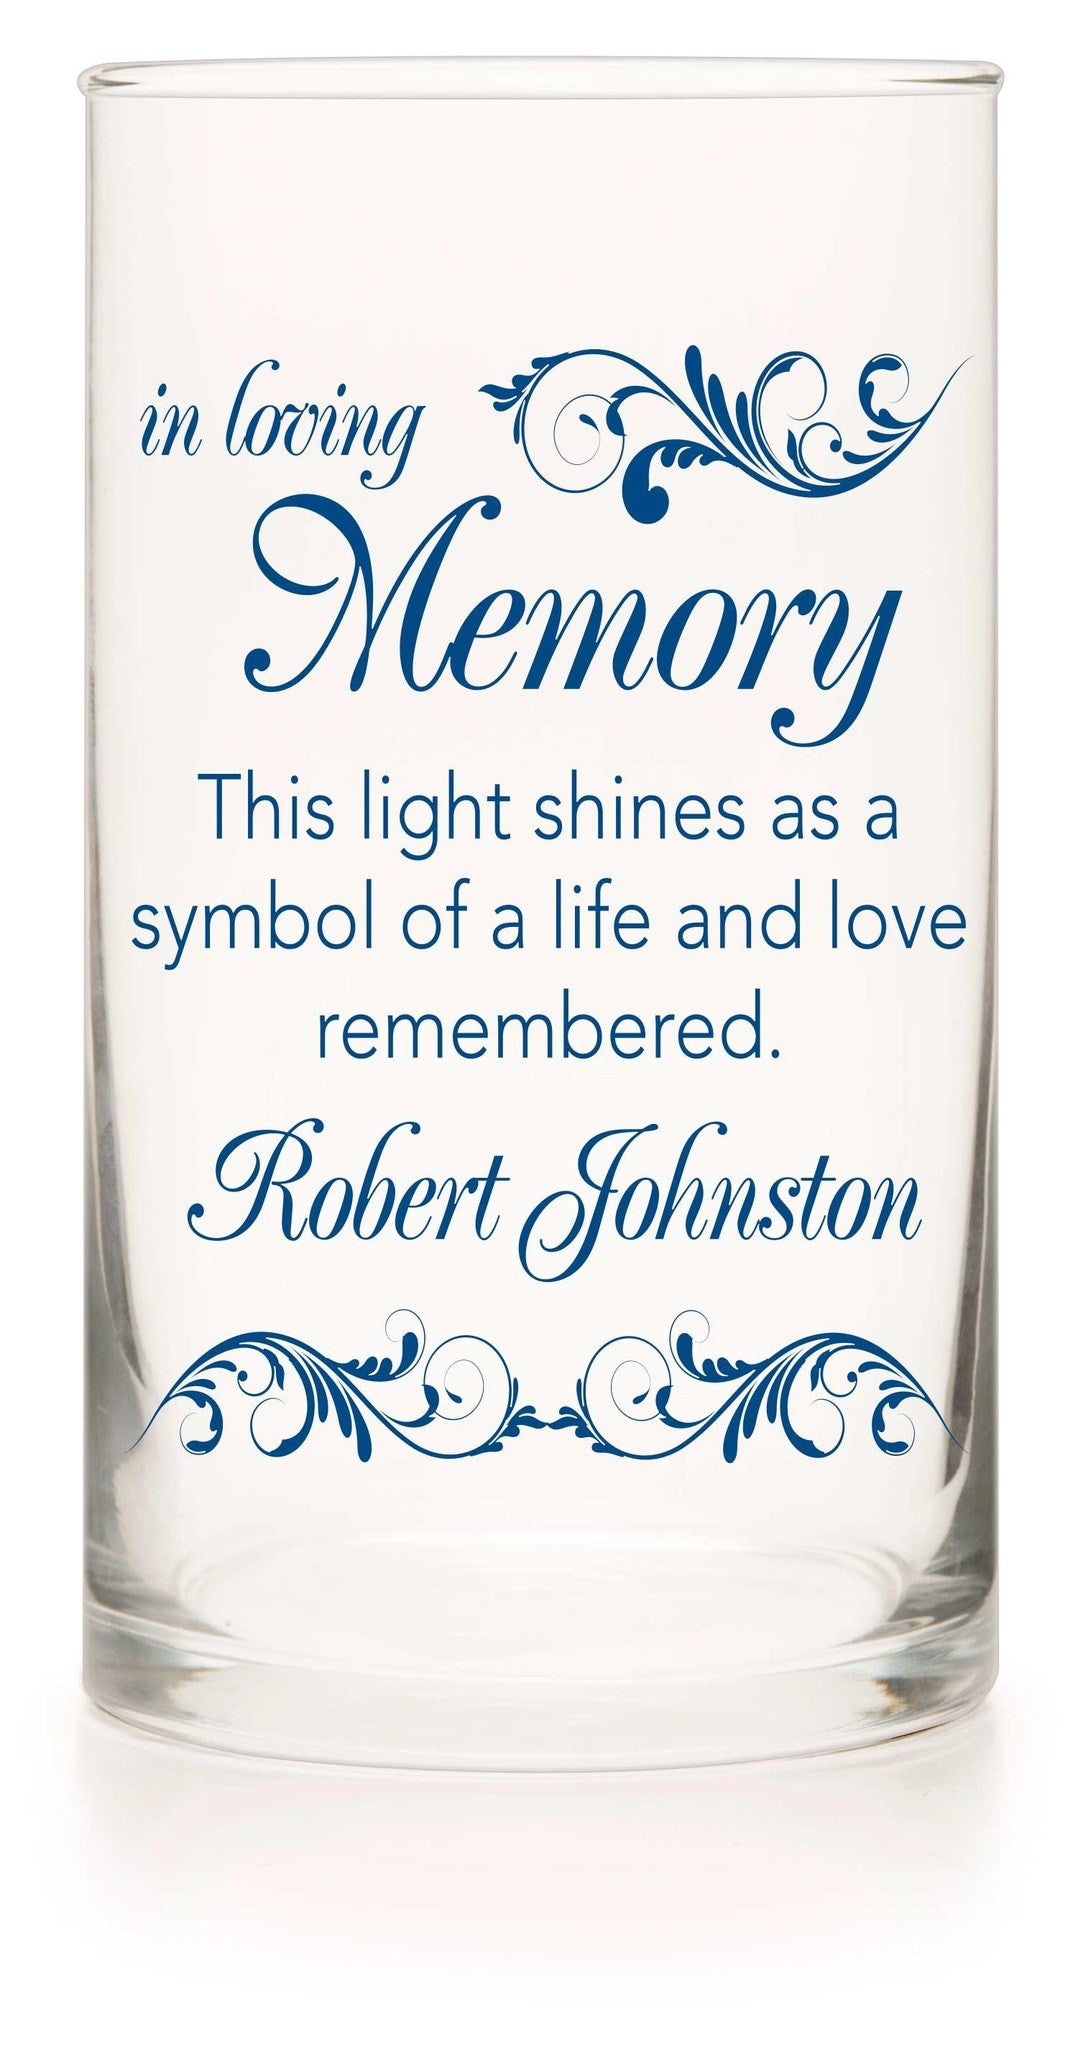 Memorial Candle - Something Blue - Personalized Candle Holders - Wedding Candles - 8